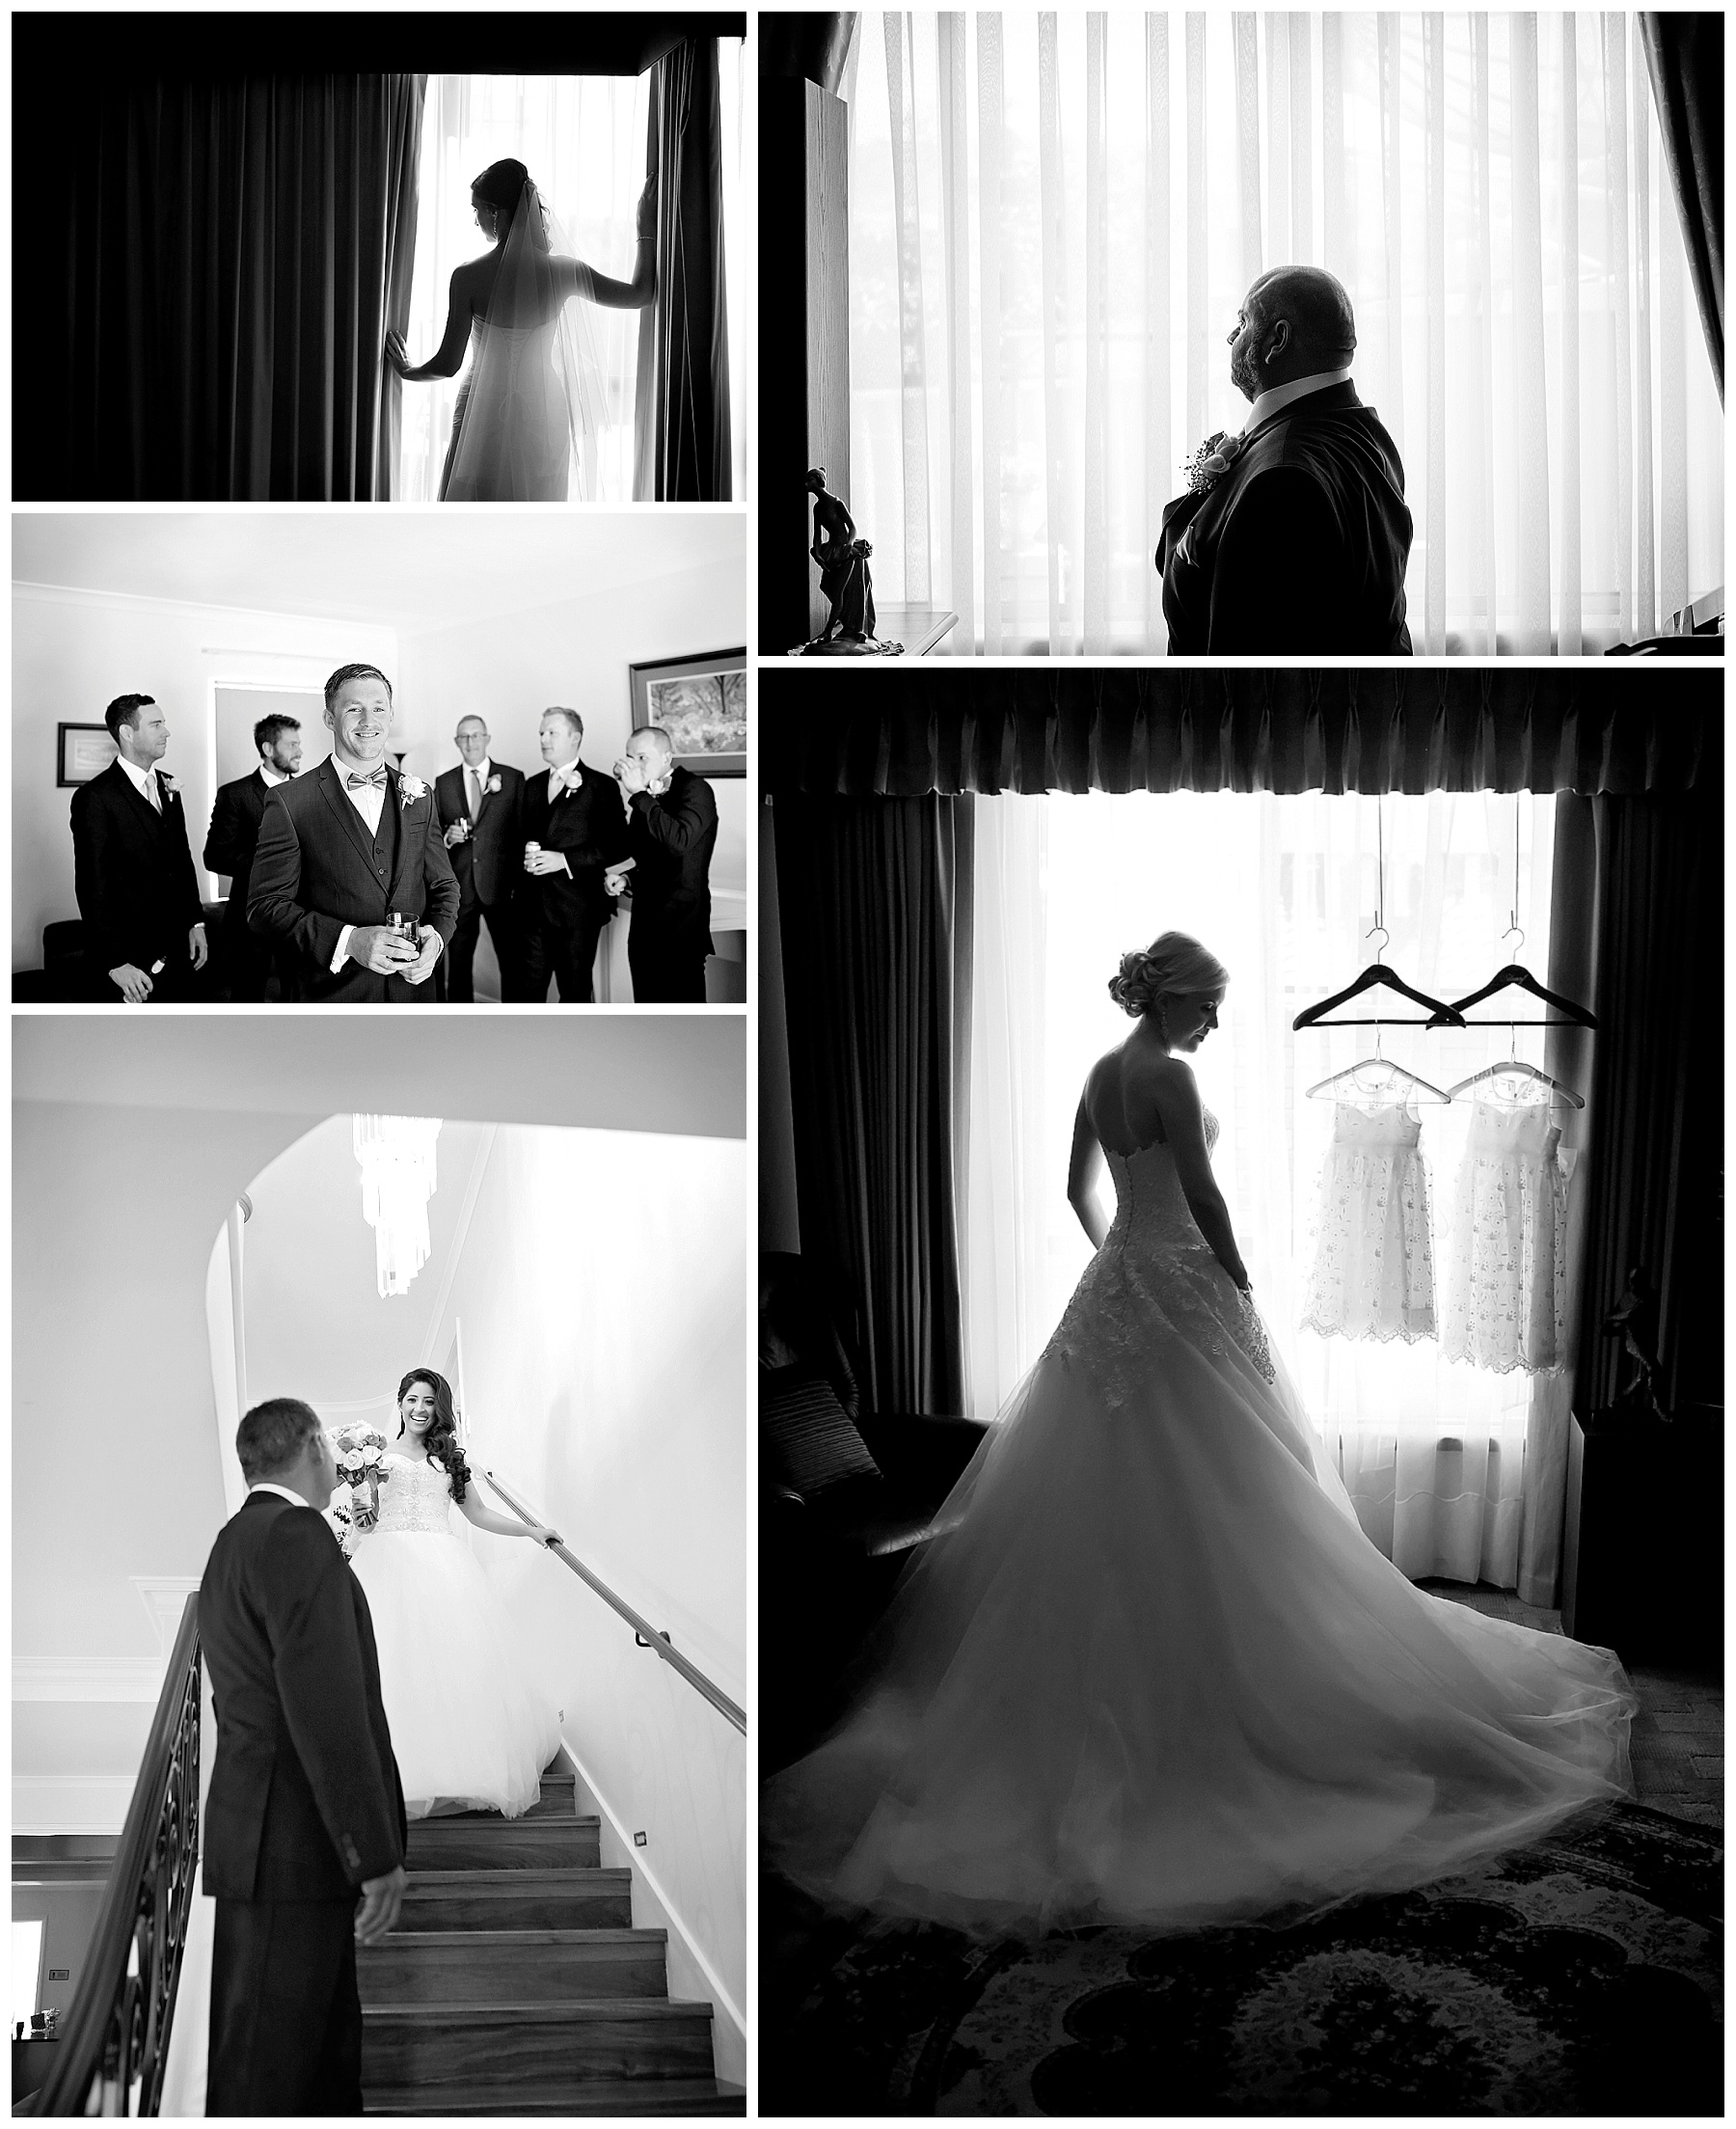 silhouetted wedding photo